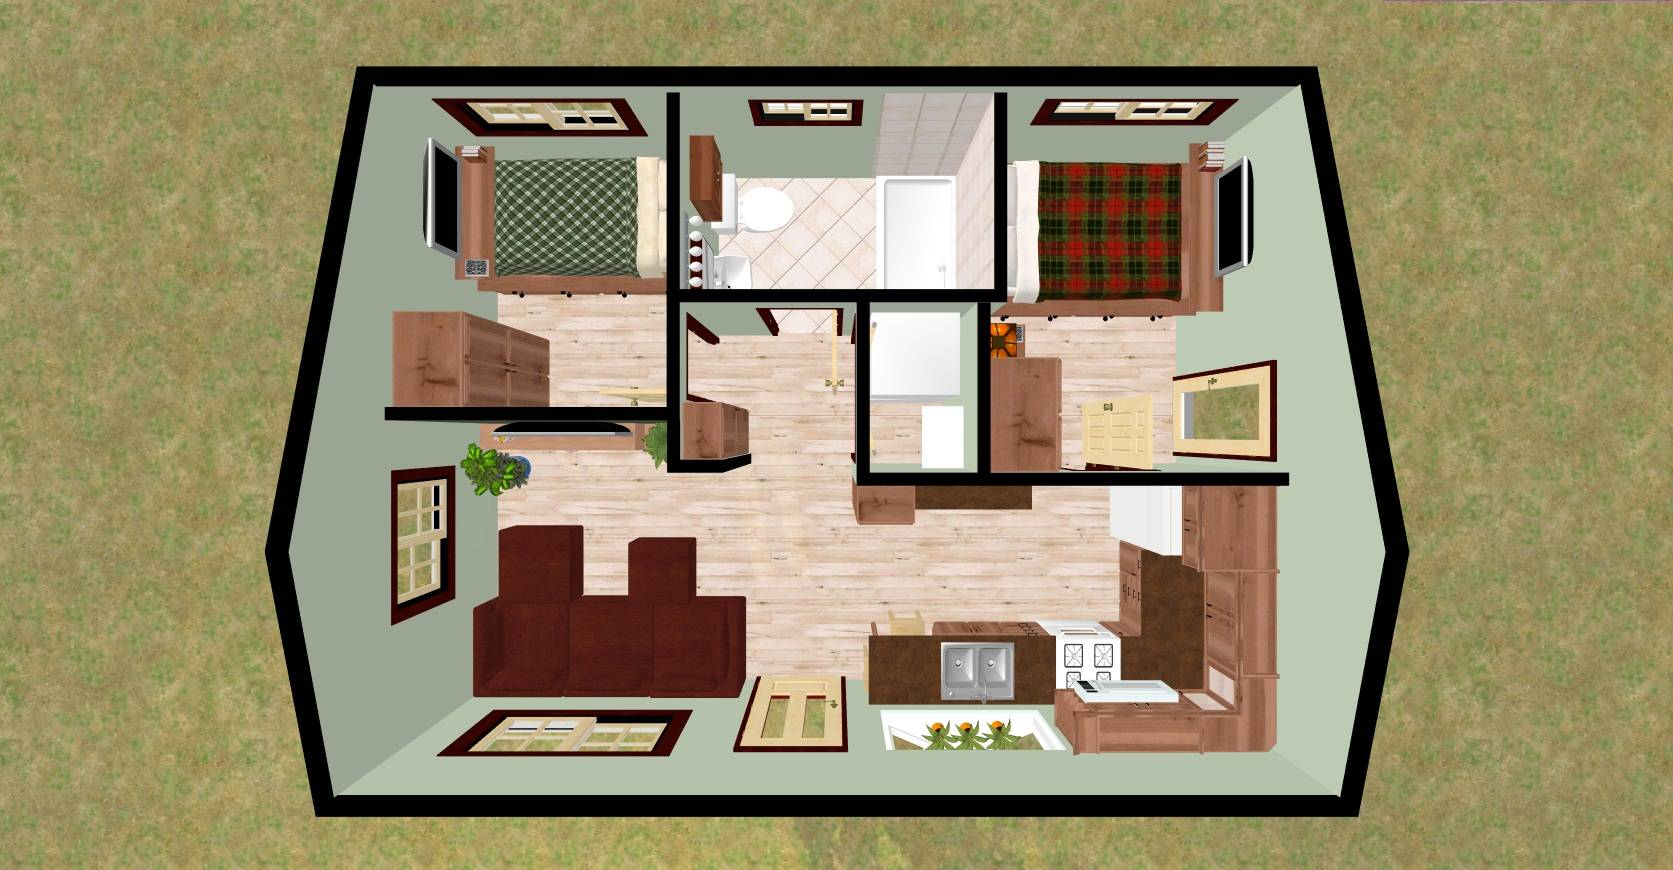 21 2 Bedroom Contemporary House Plans Ideas House Plans